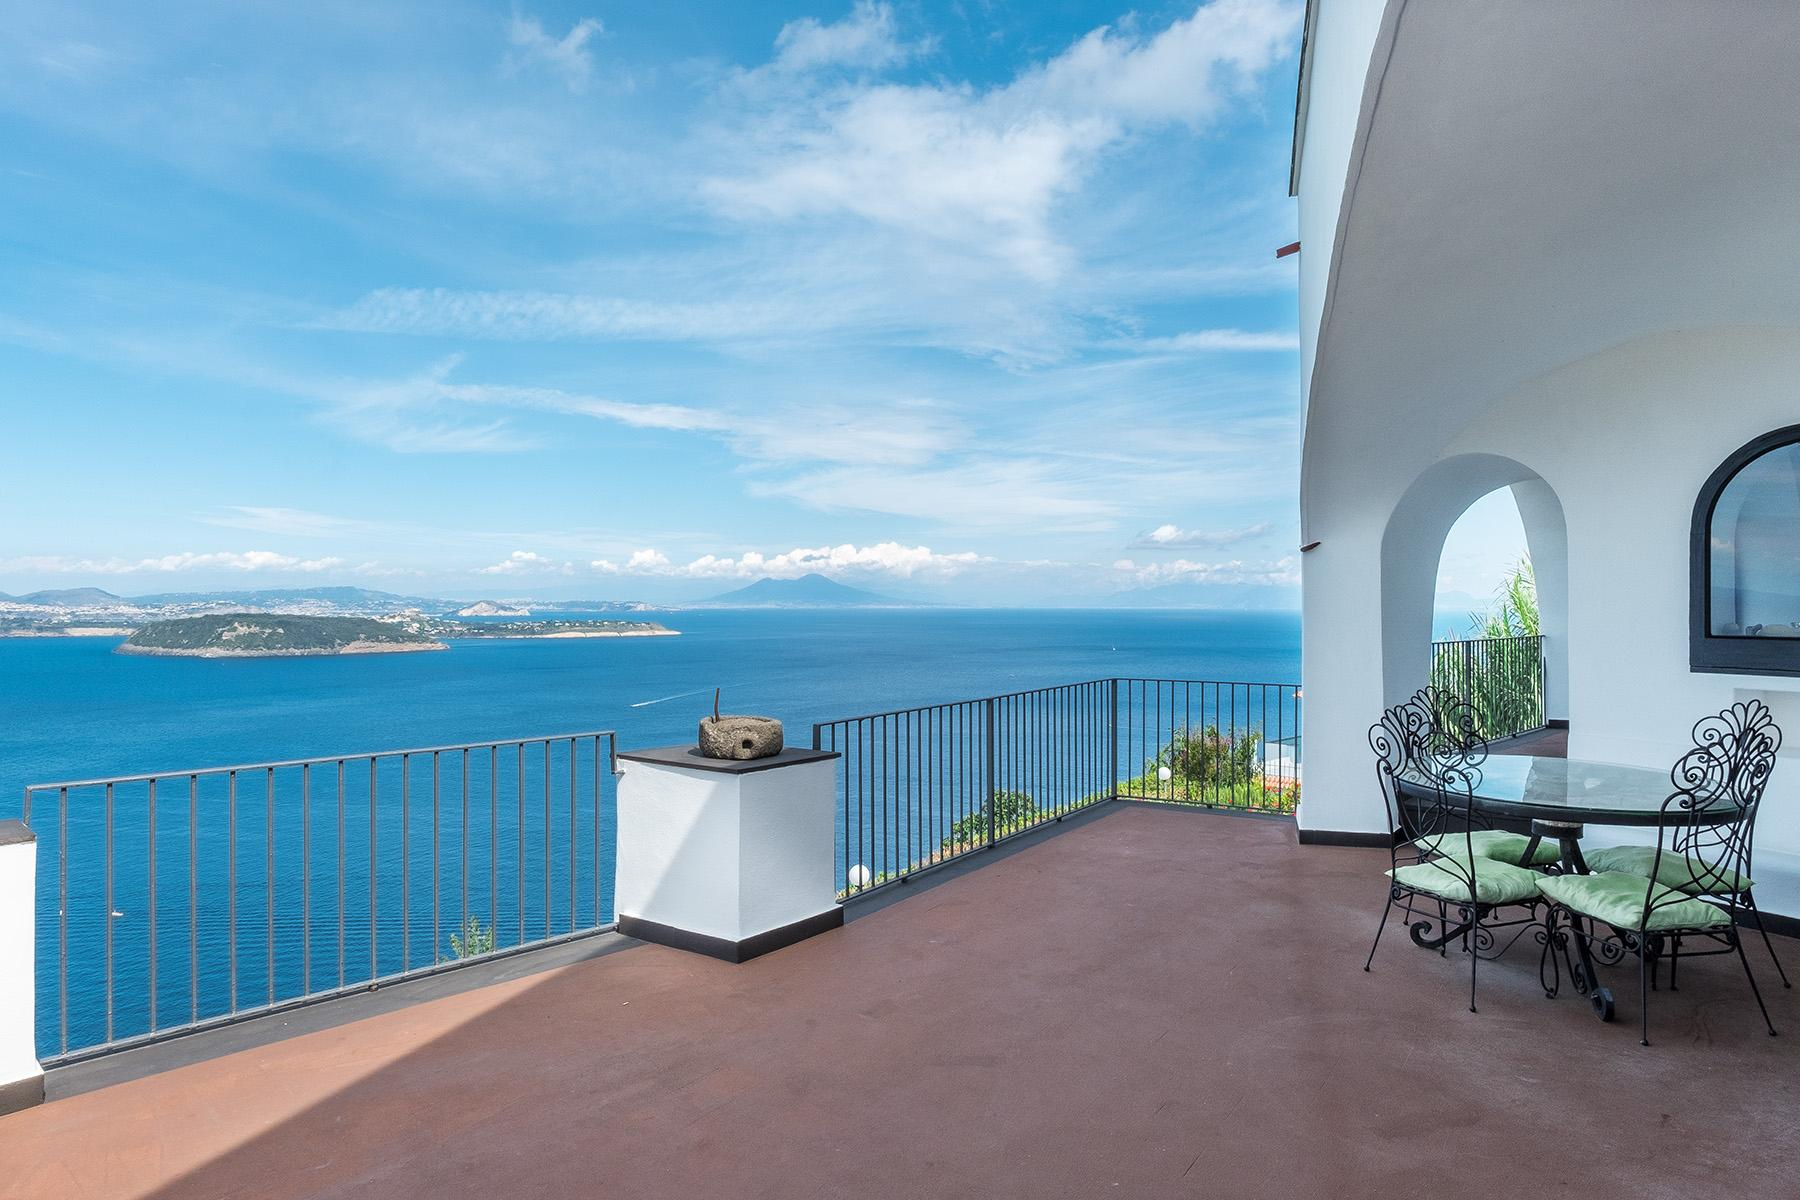 Enchanting villa with the view - 3